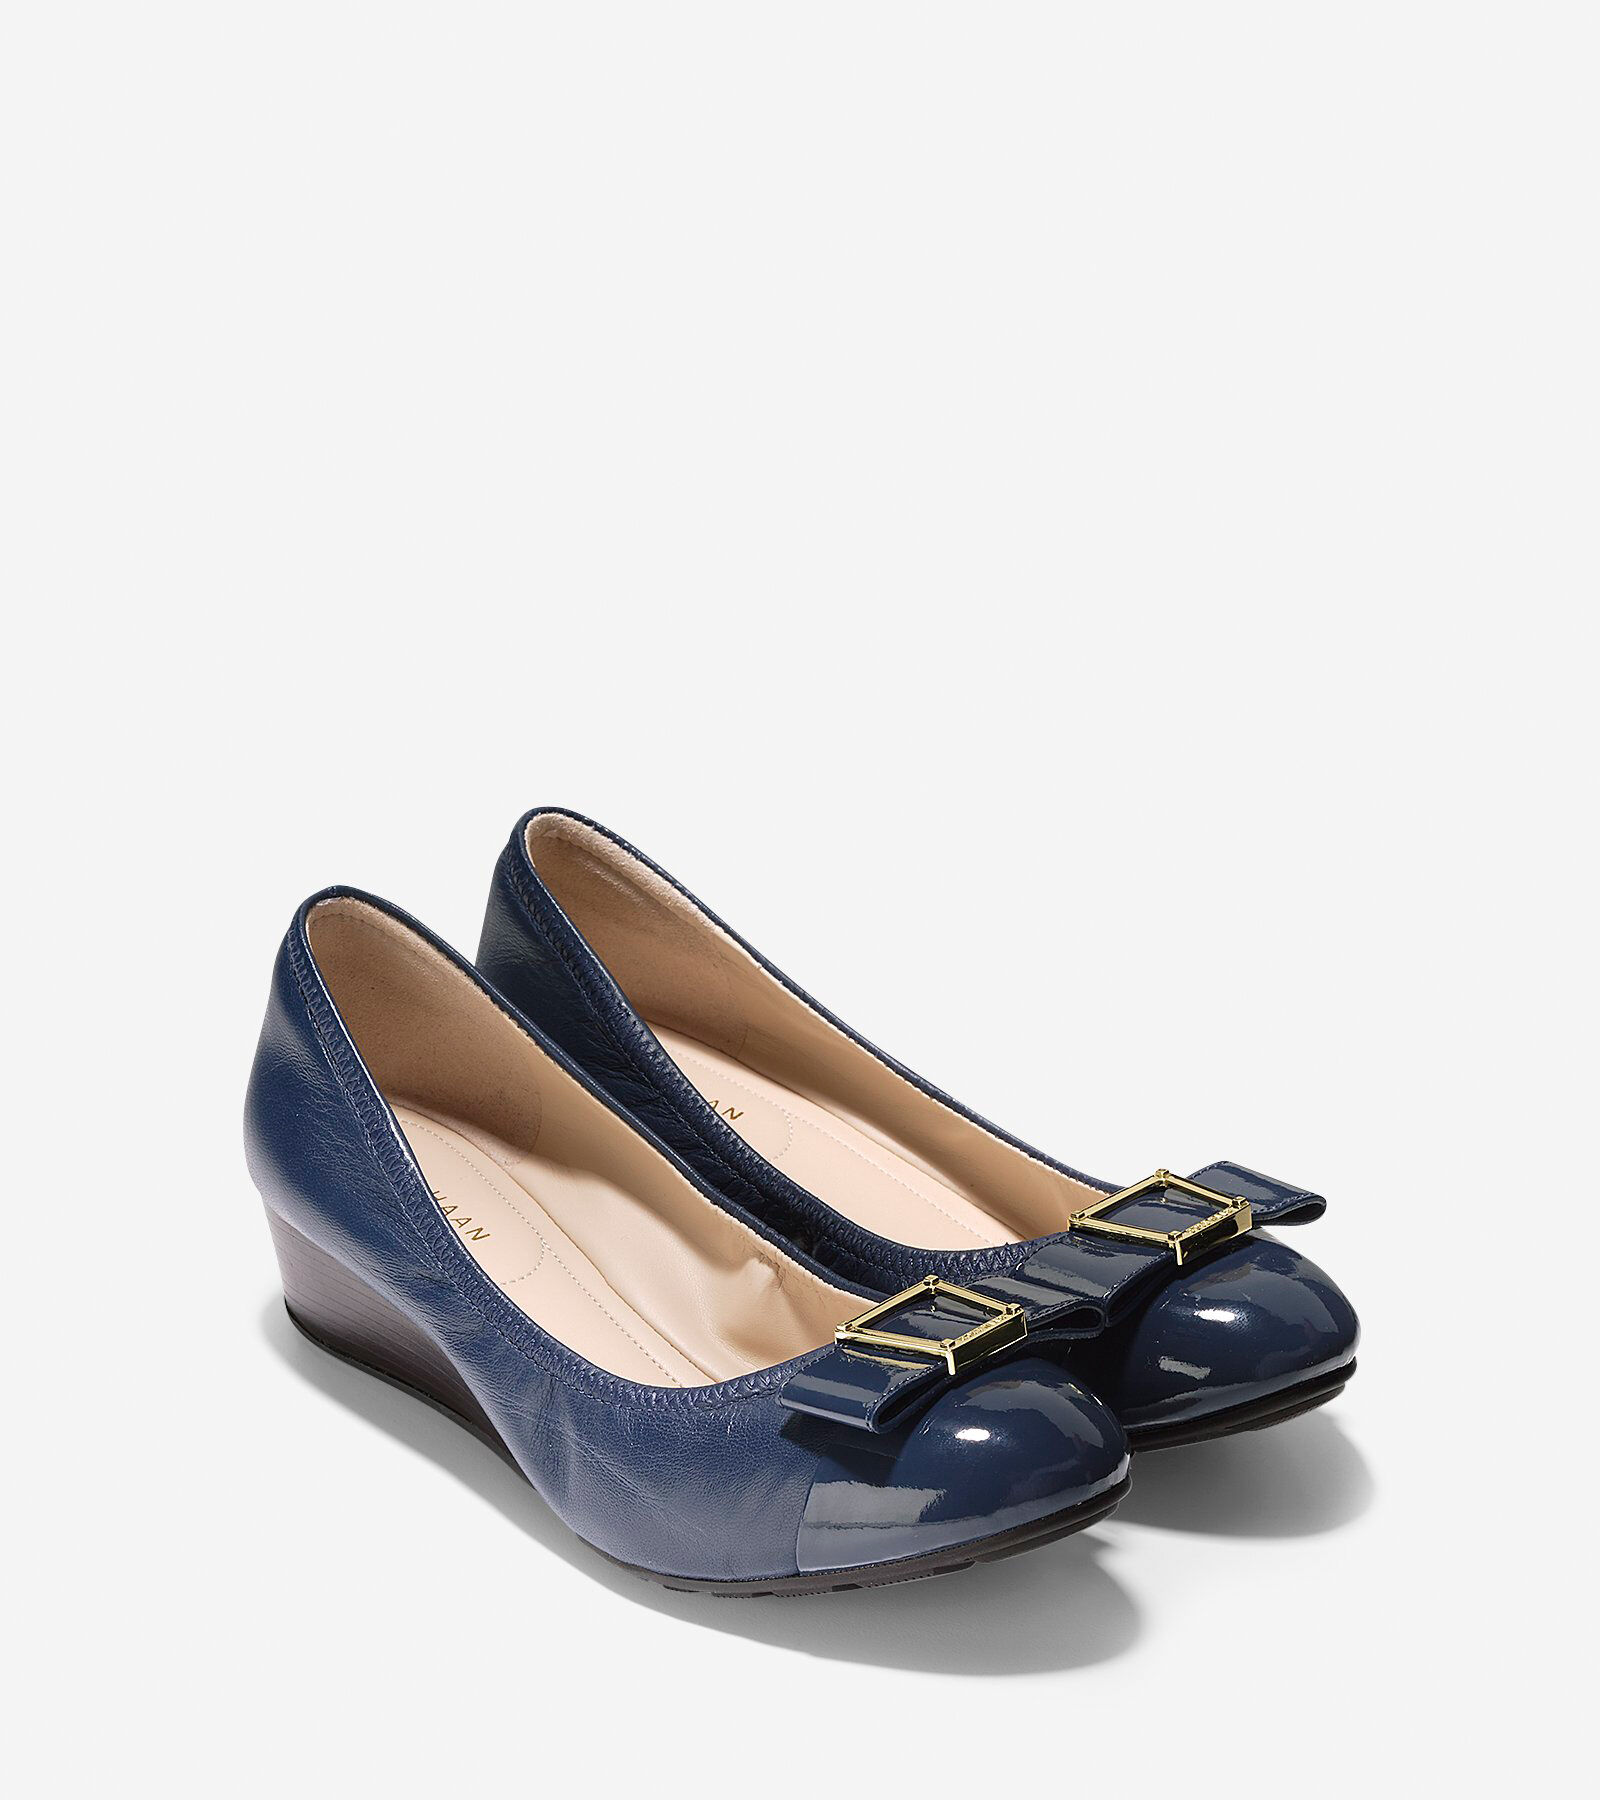 Women's Emory Bow Wedge in Marine Blue